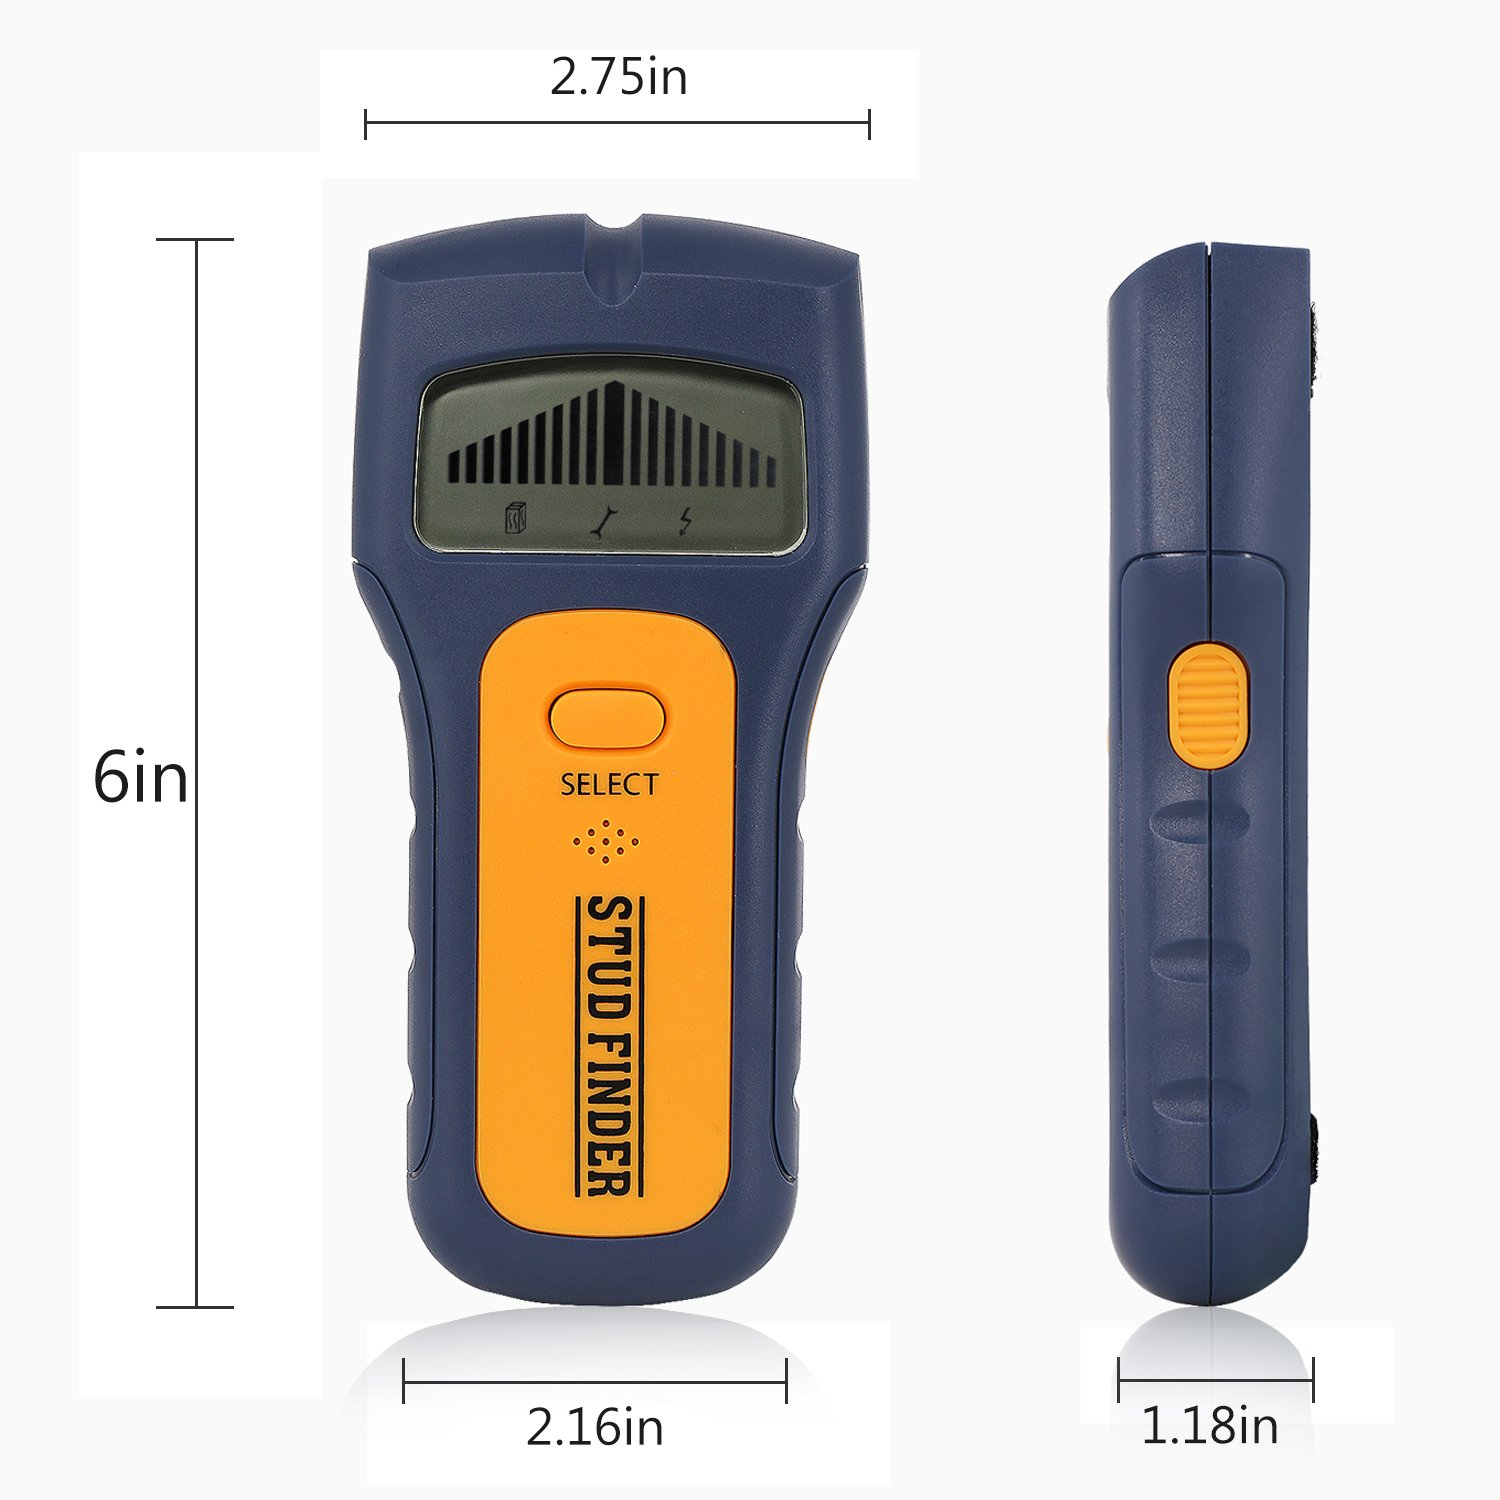 Stud Finder, Multifunction Edge-Finding wall Stud Finder & Sensor for Wood Metal/Wall Studs/AC Wire (yellow) (stud finder8) by imoocare (Image #3)